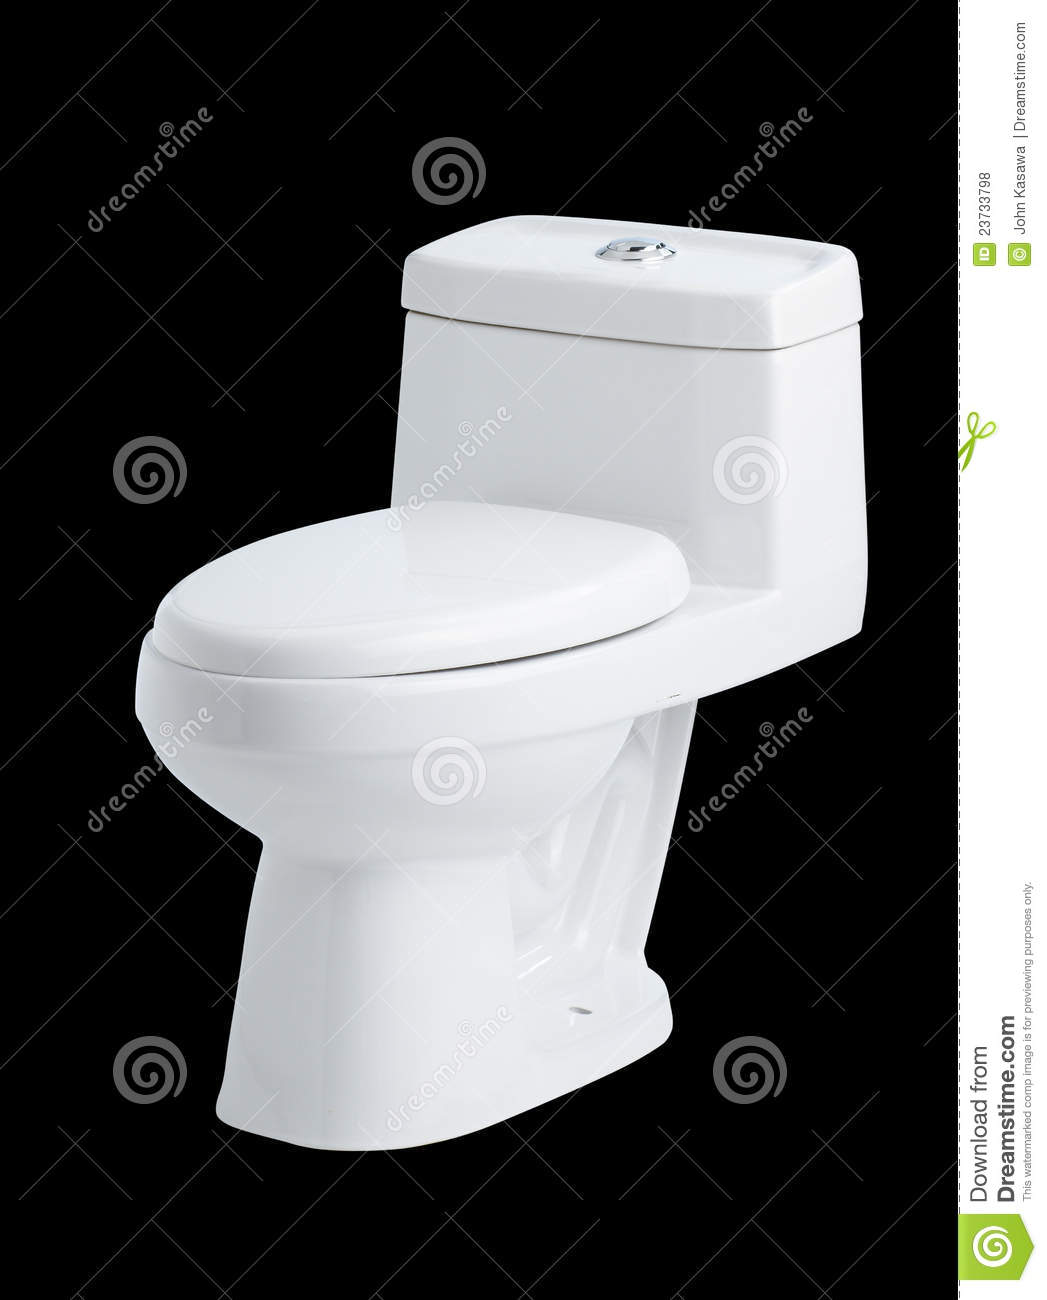 Modern Design Of The Toilet Bowl Stock Photo Image Of